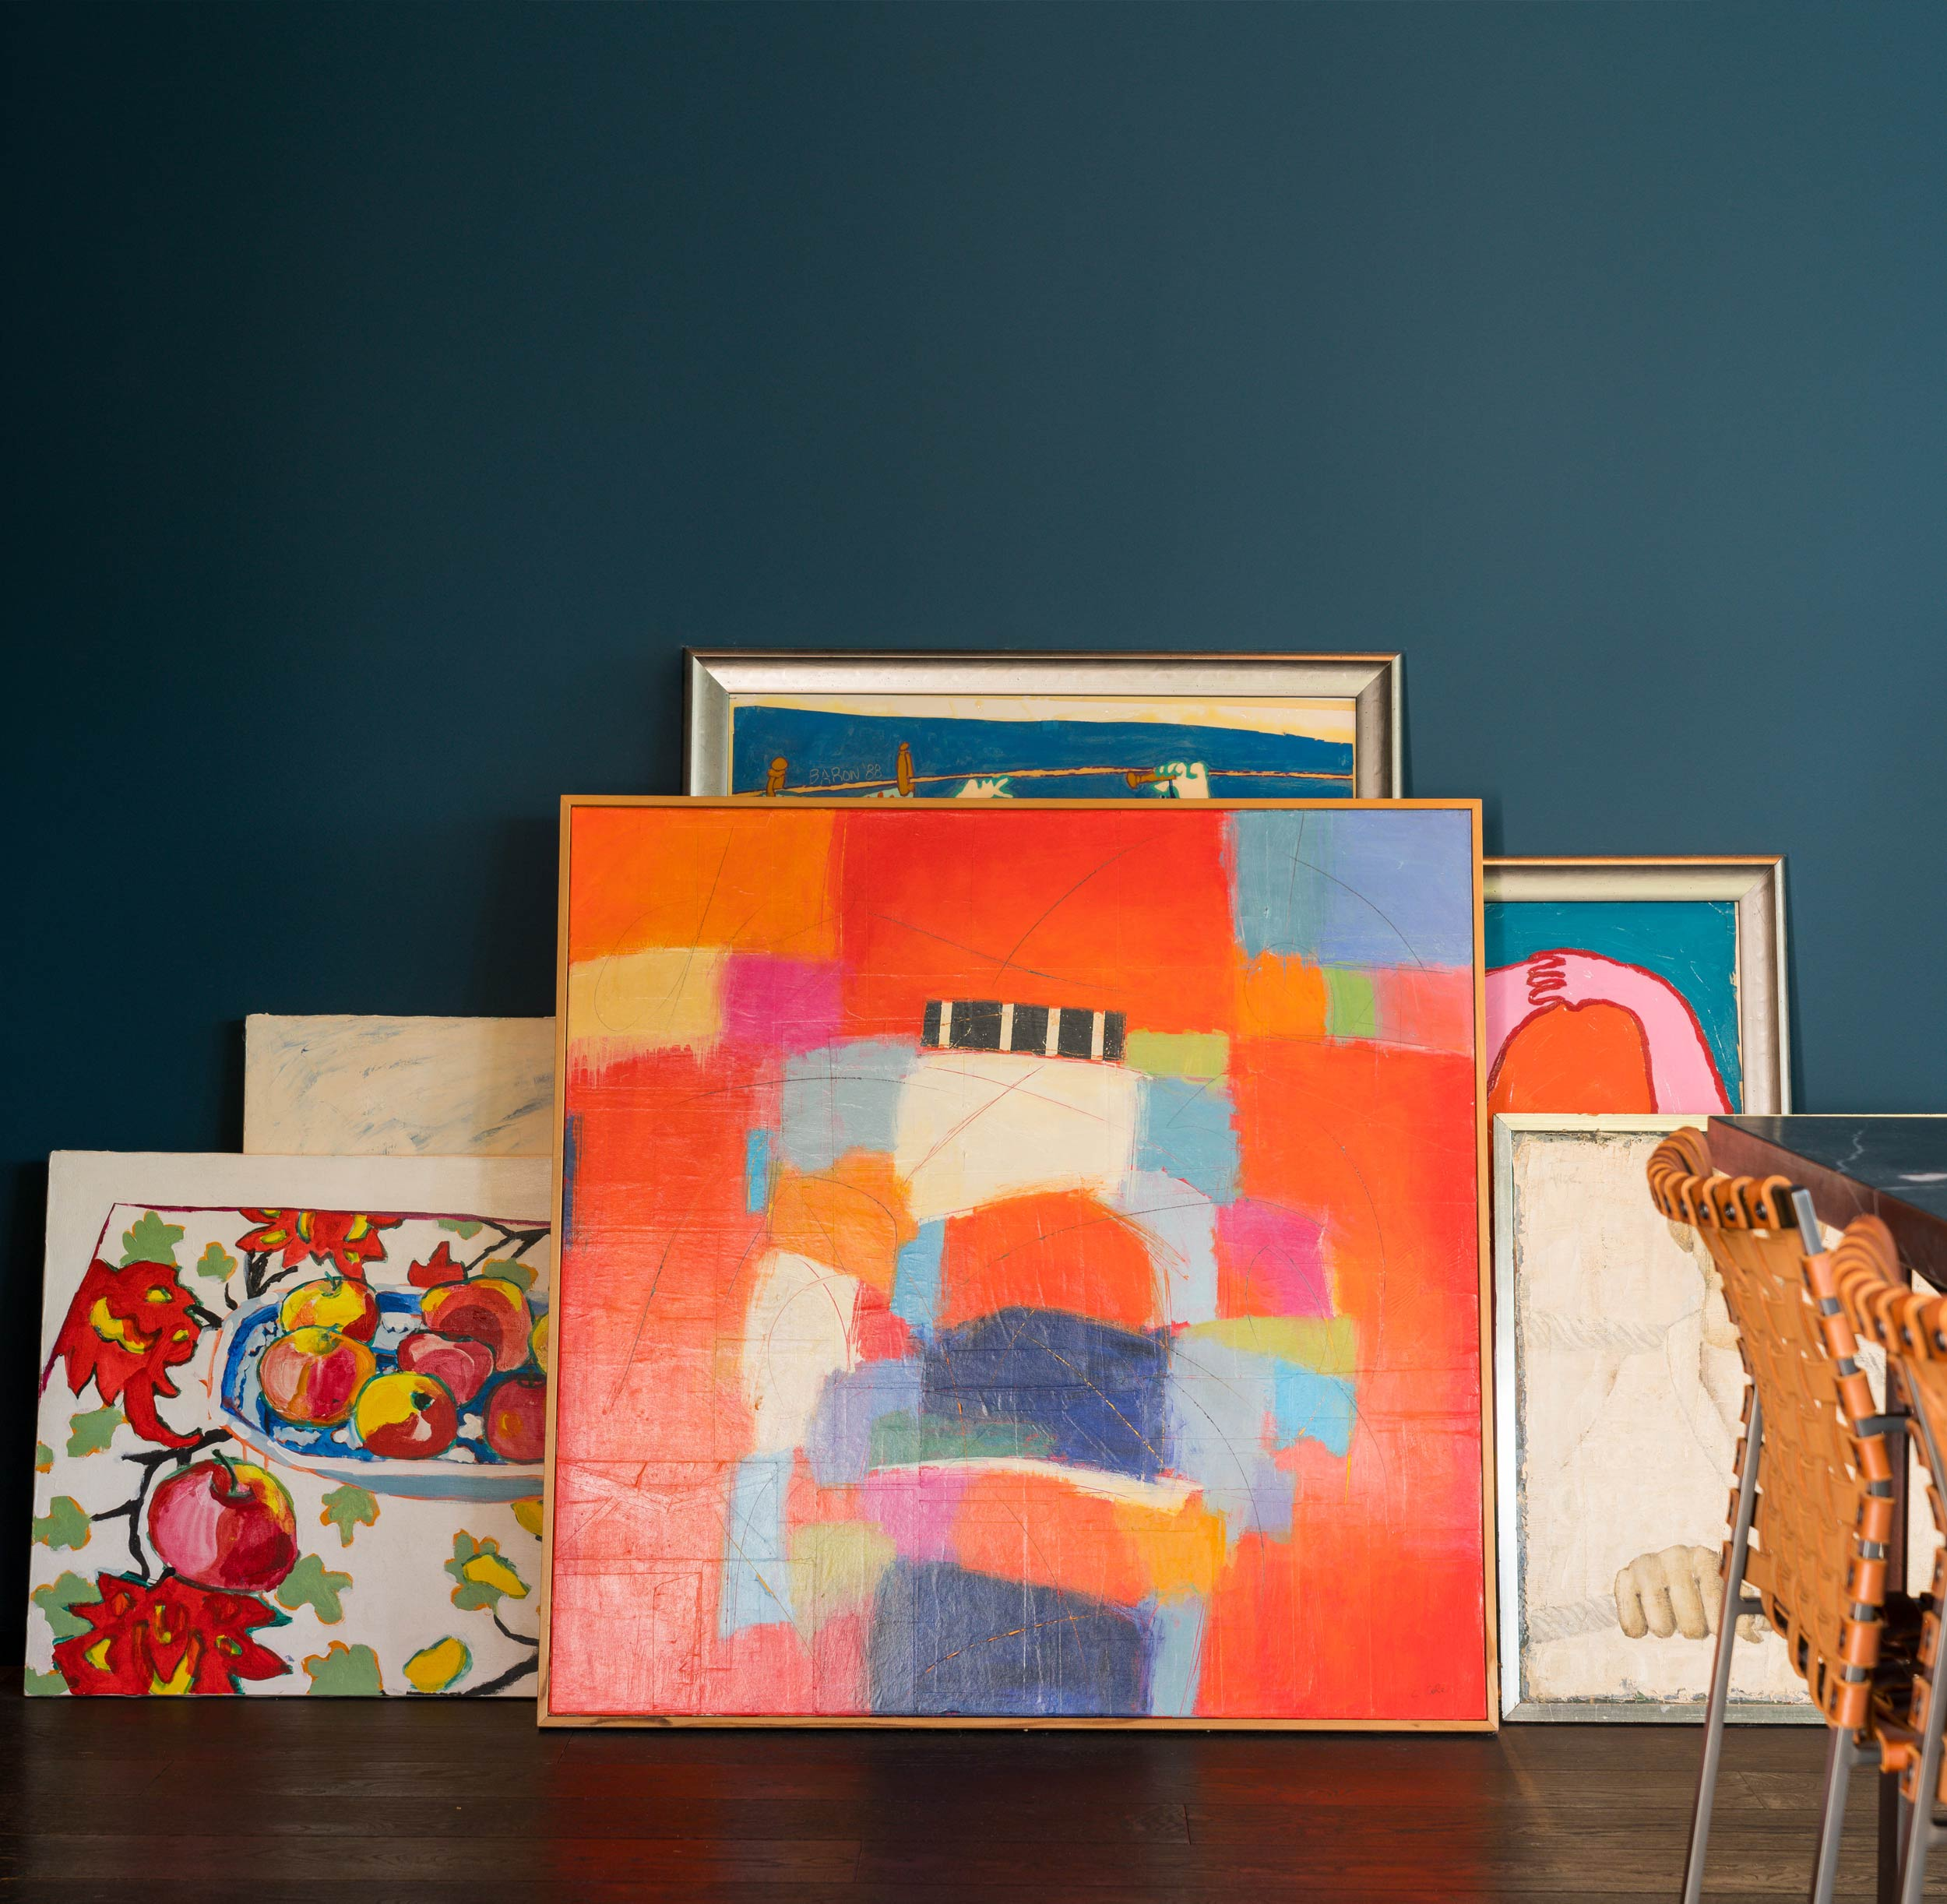 brightly colored abstract paintings leaning against wall